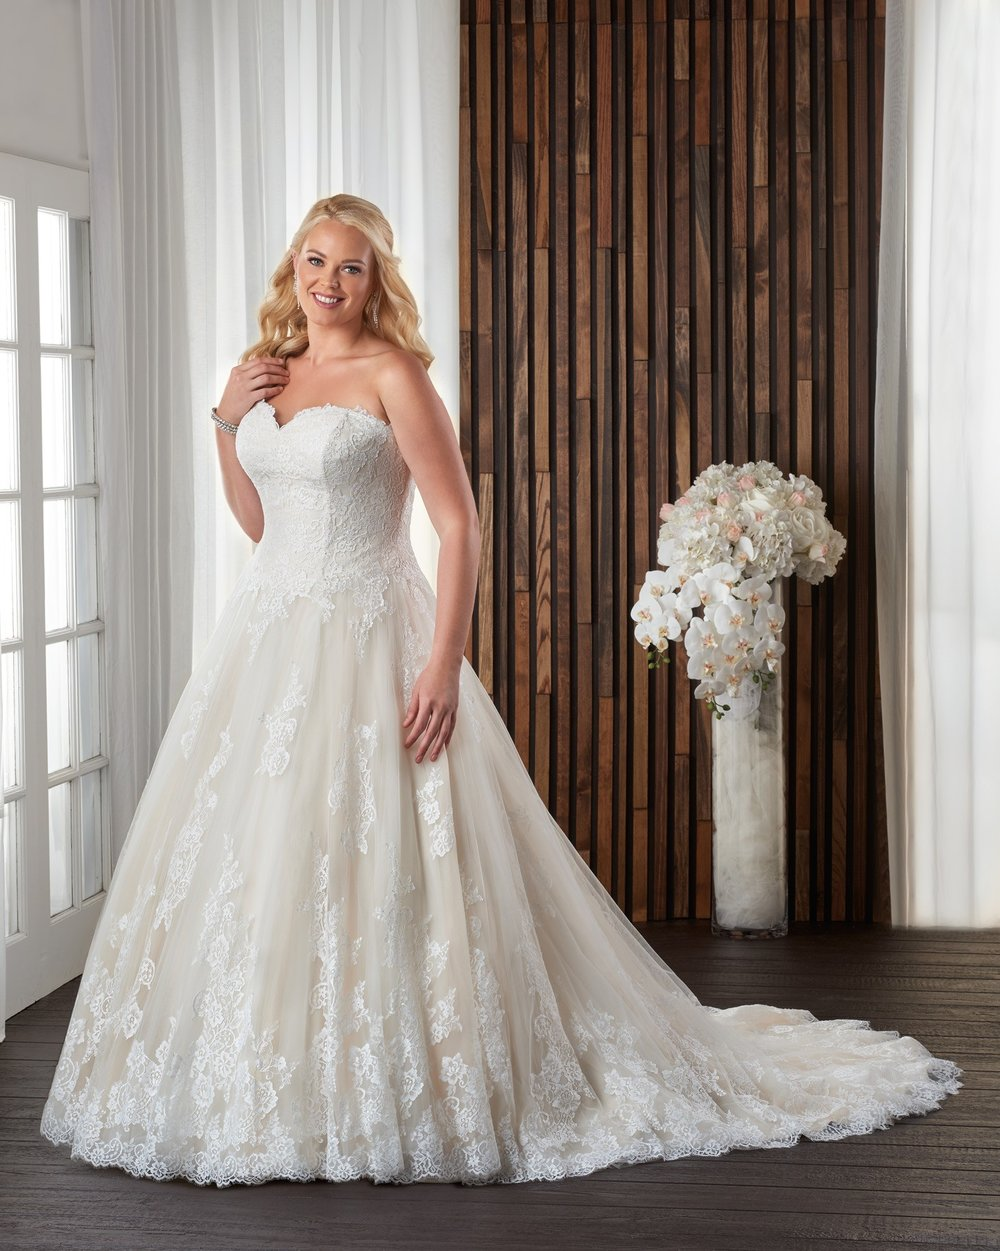 BonnyBridal-BridesbyYoung-PlusSizeWeddingDress-1711.jpg